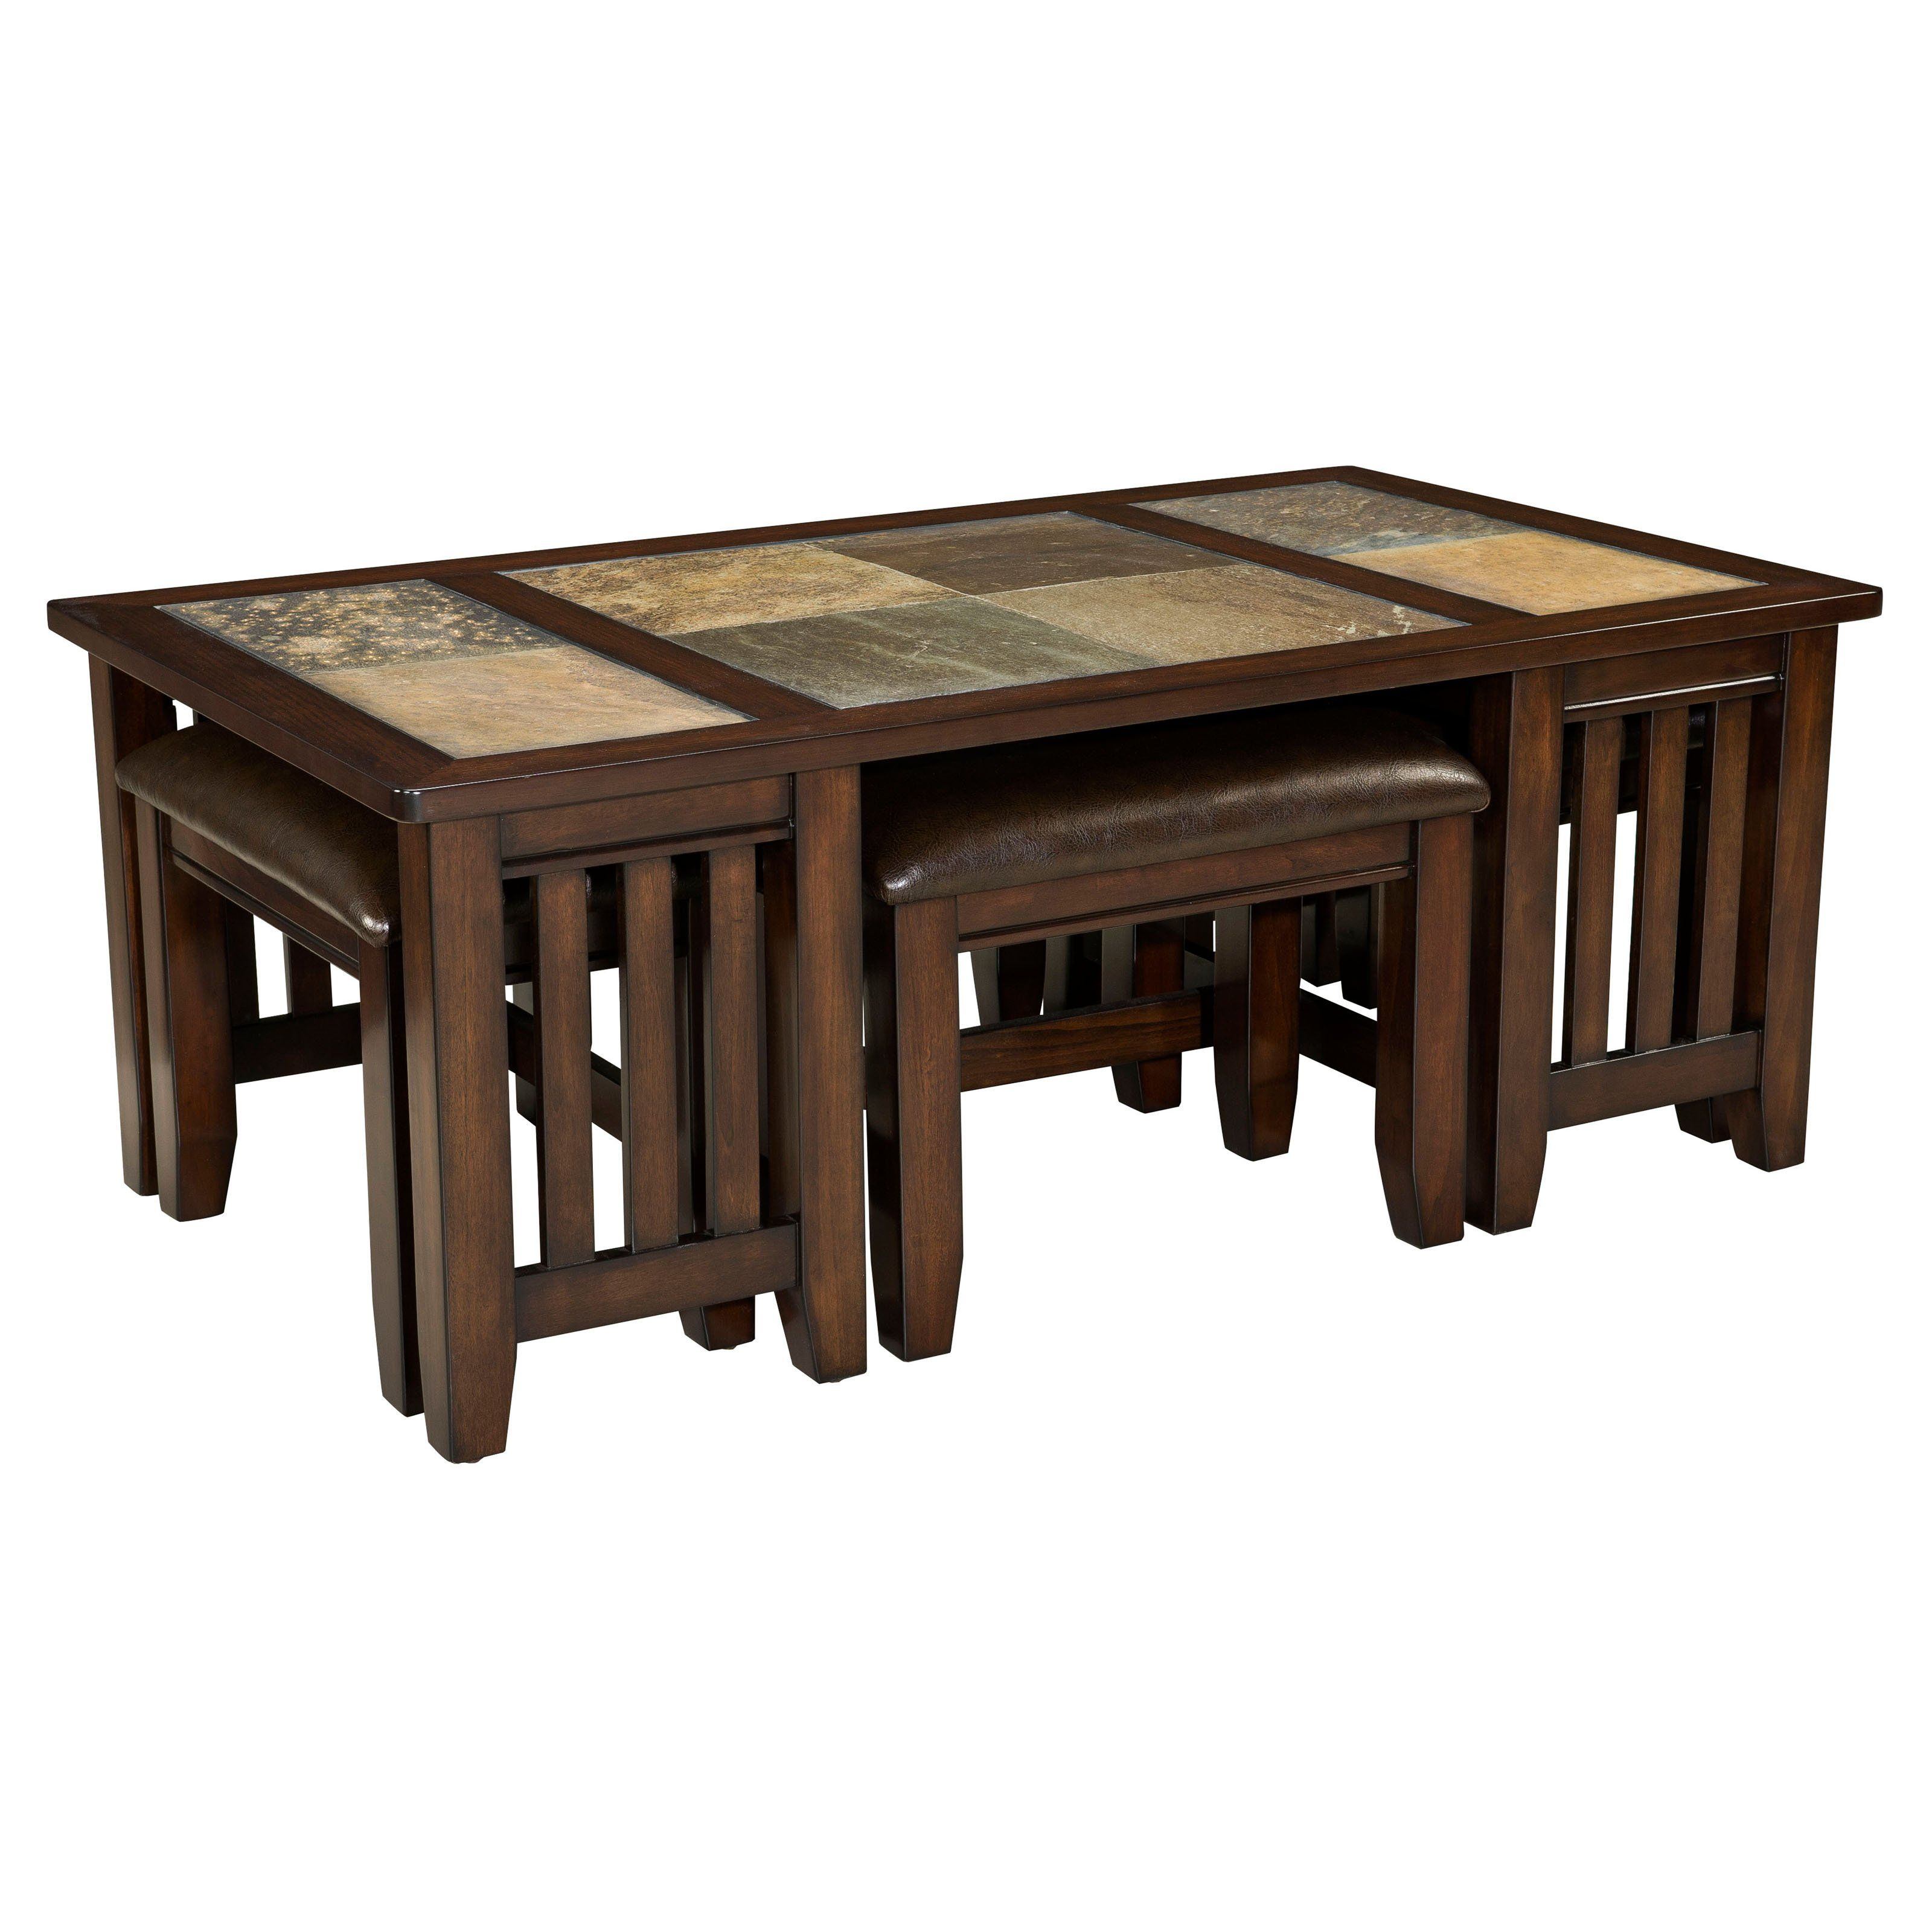 Standard Furniture Napa Valley Rectangle Wood And Stone Top Coffee Table With 4 Stools Www Hayneedle Co Dark Wood Coffee Table Coffee Table Coffee Table Wood [ 3200 x 3200 Pixel ]